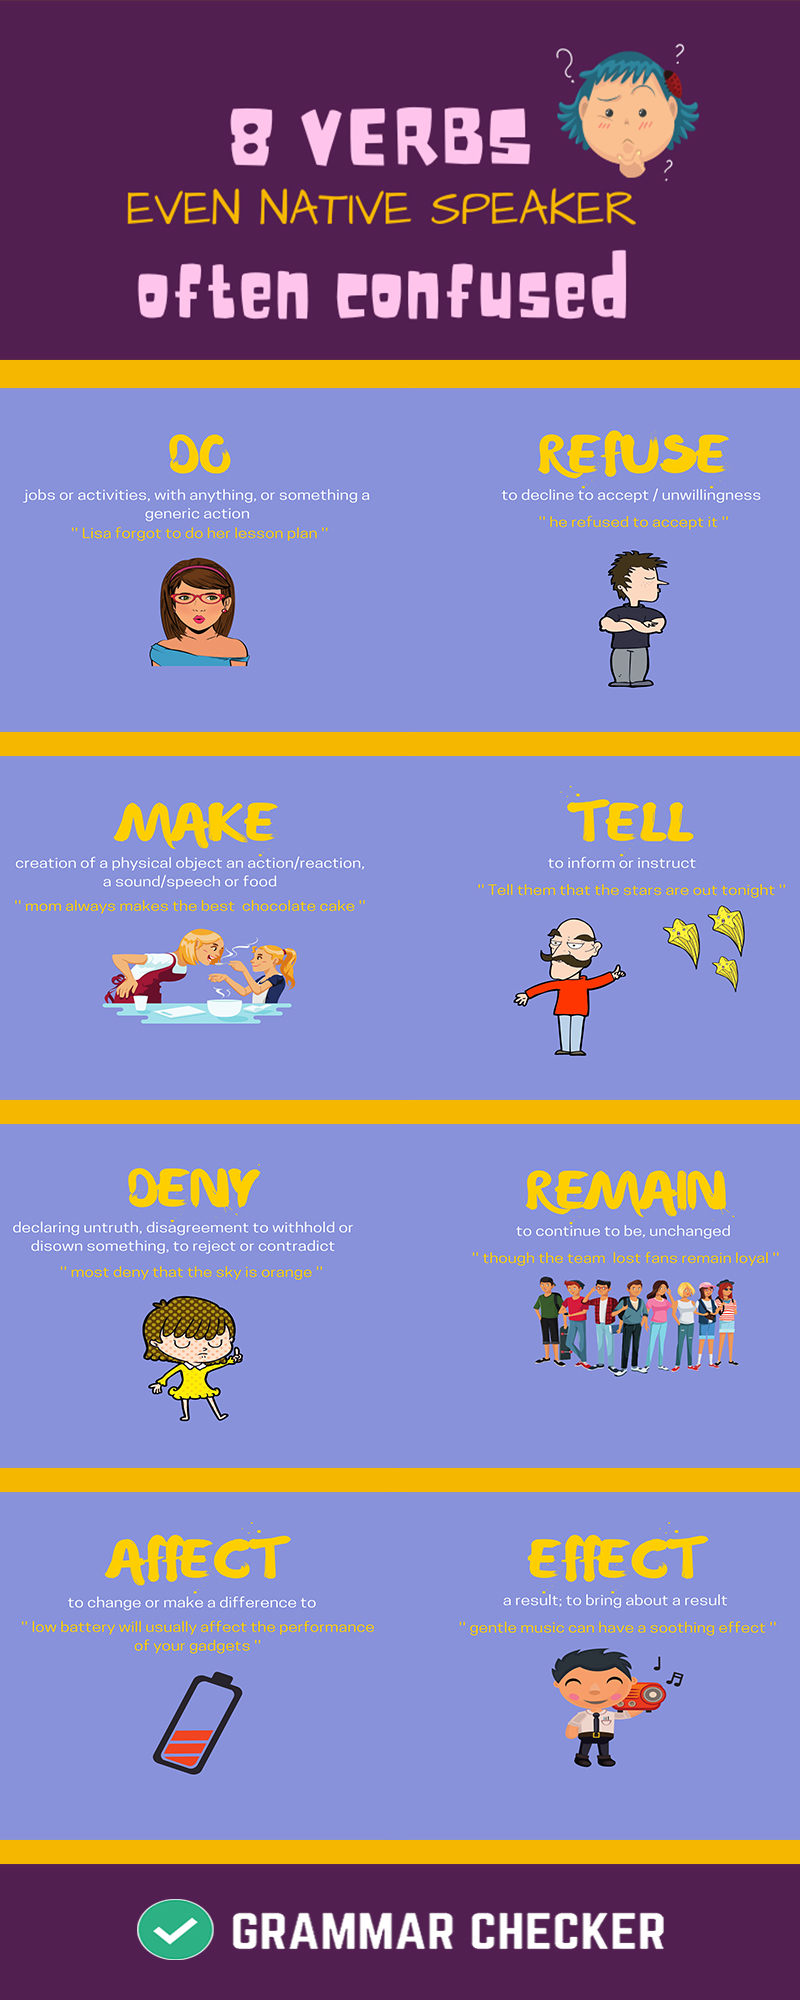 8 Verbs Even Native Speakers Often Confuse